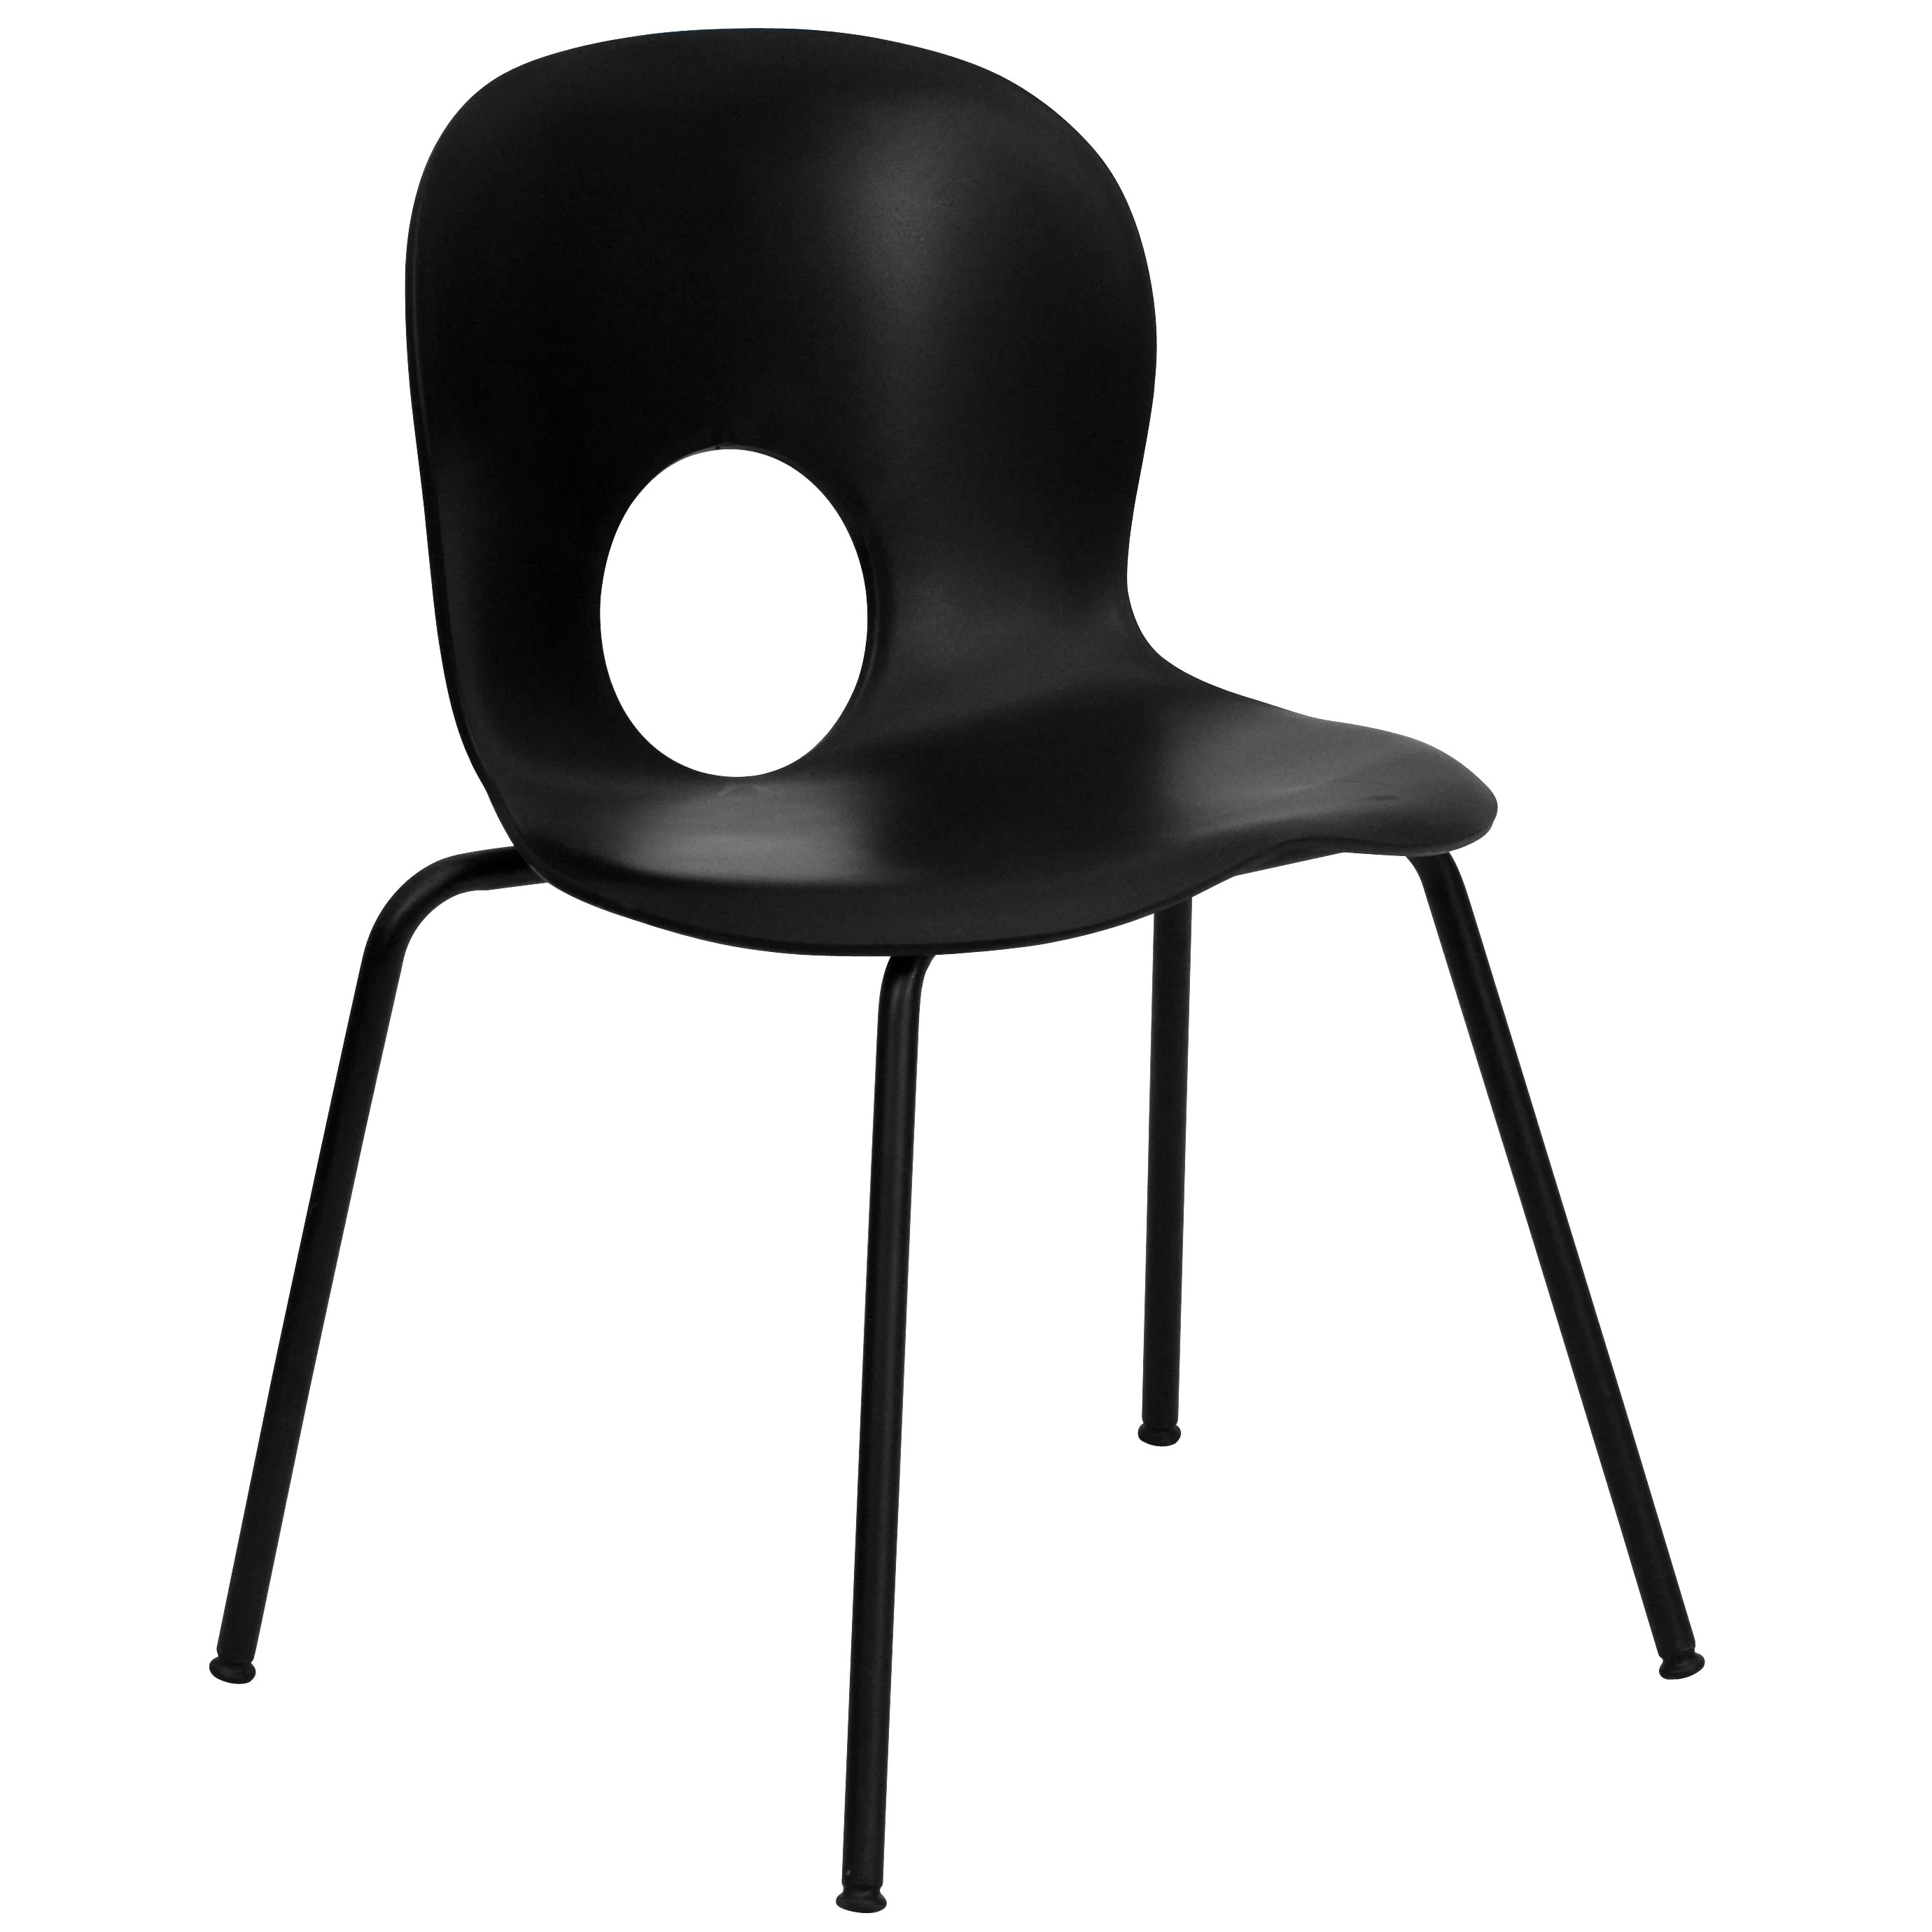 Hercules Stacking Chairs Flash Furniture Hercules Series Armless Stacking Chair